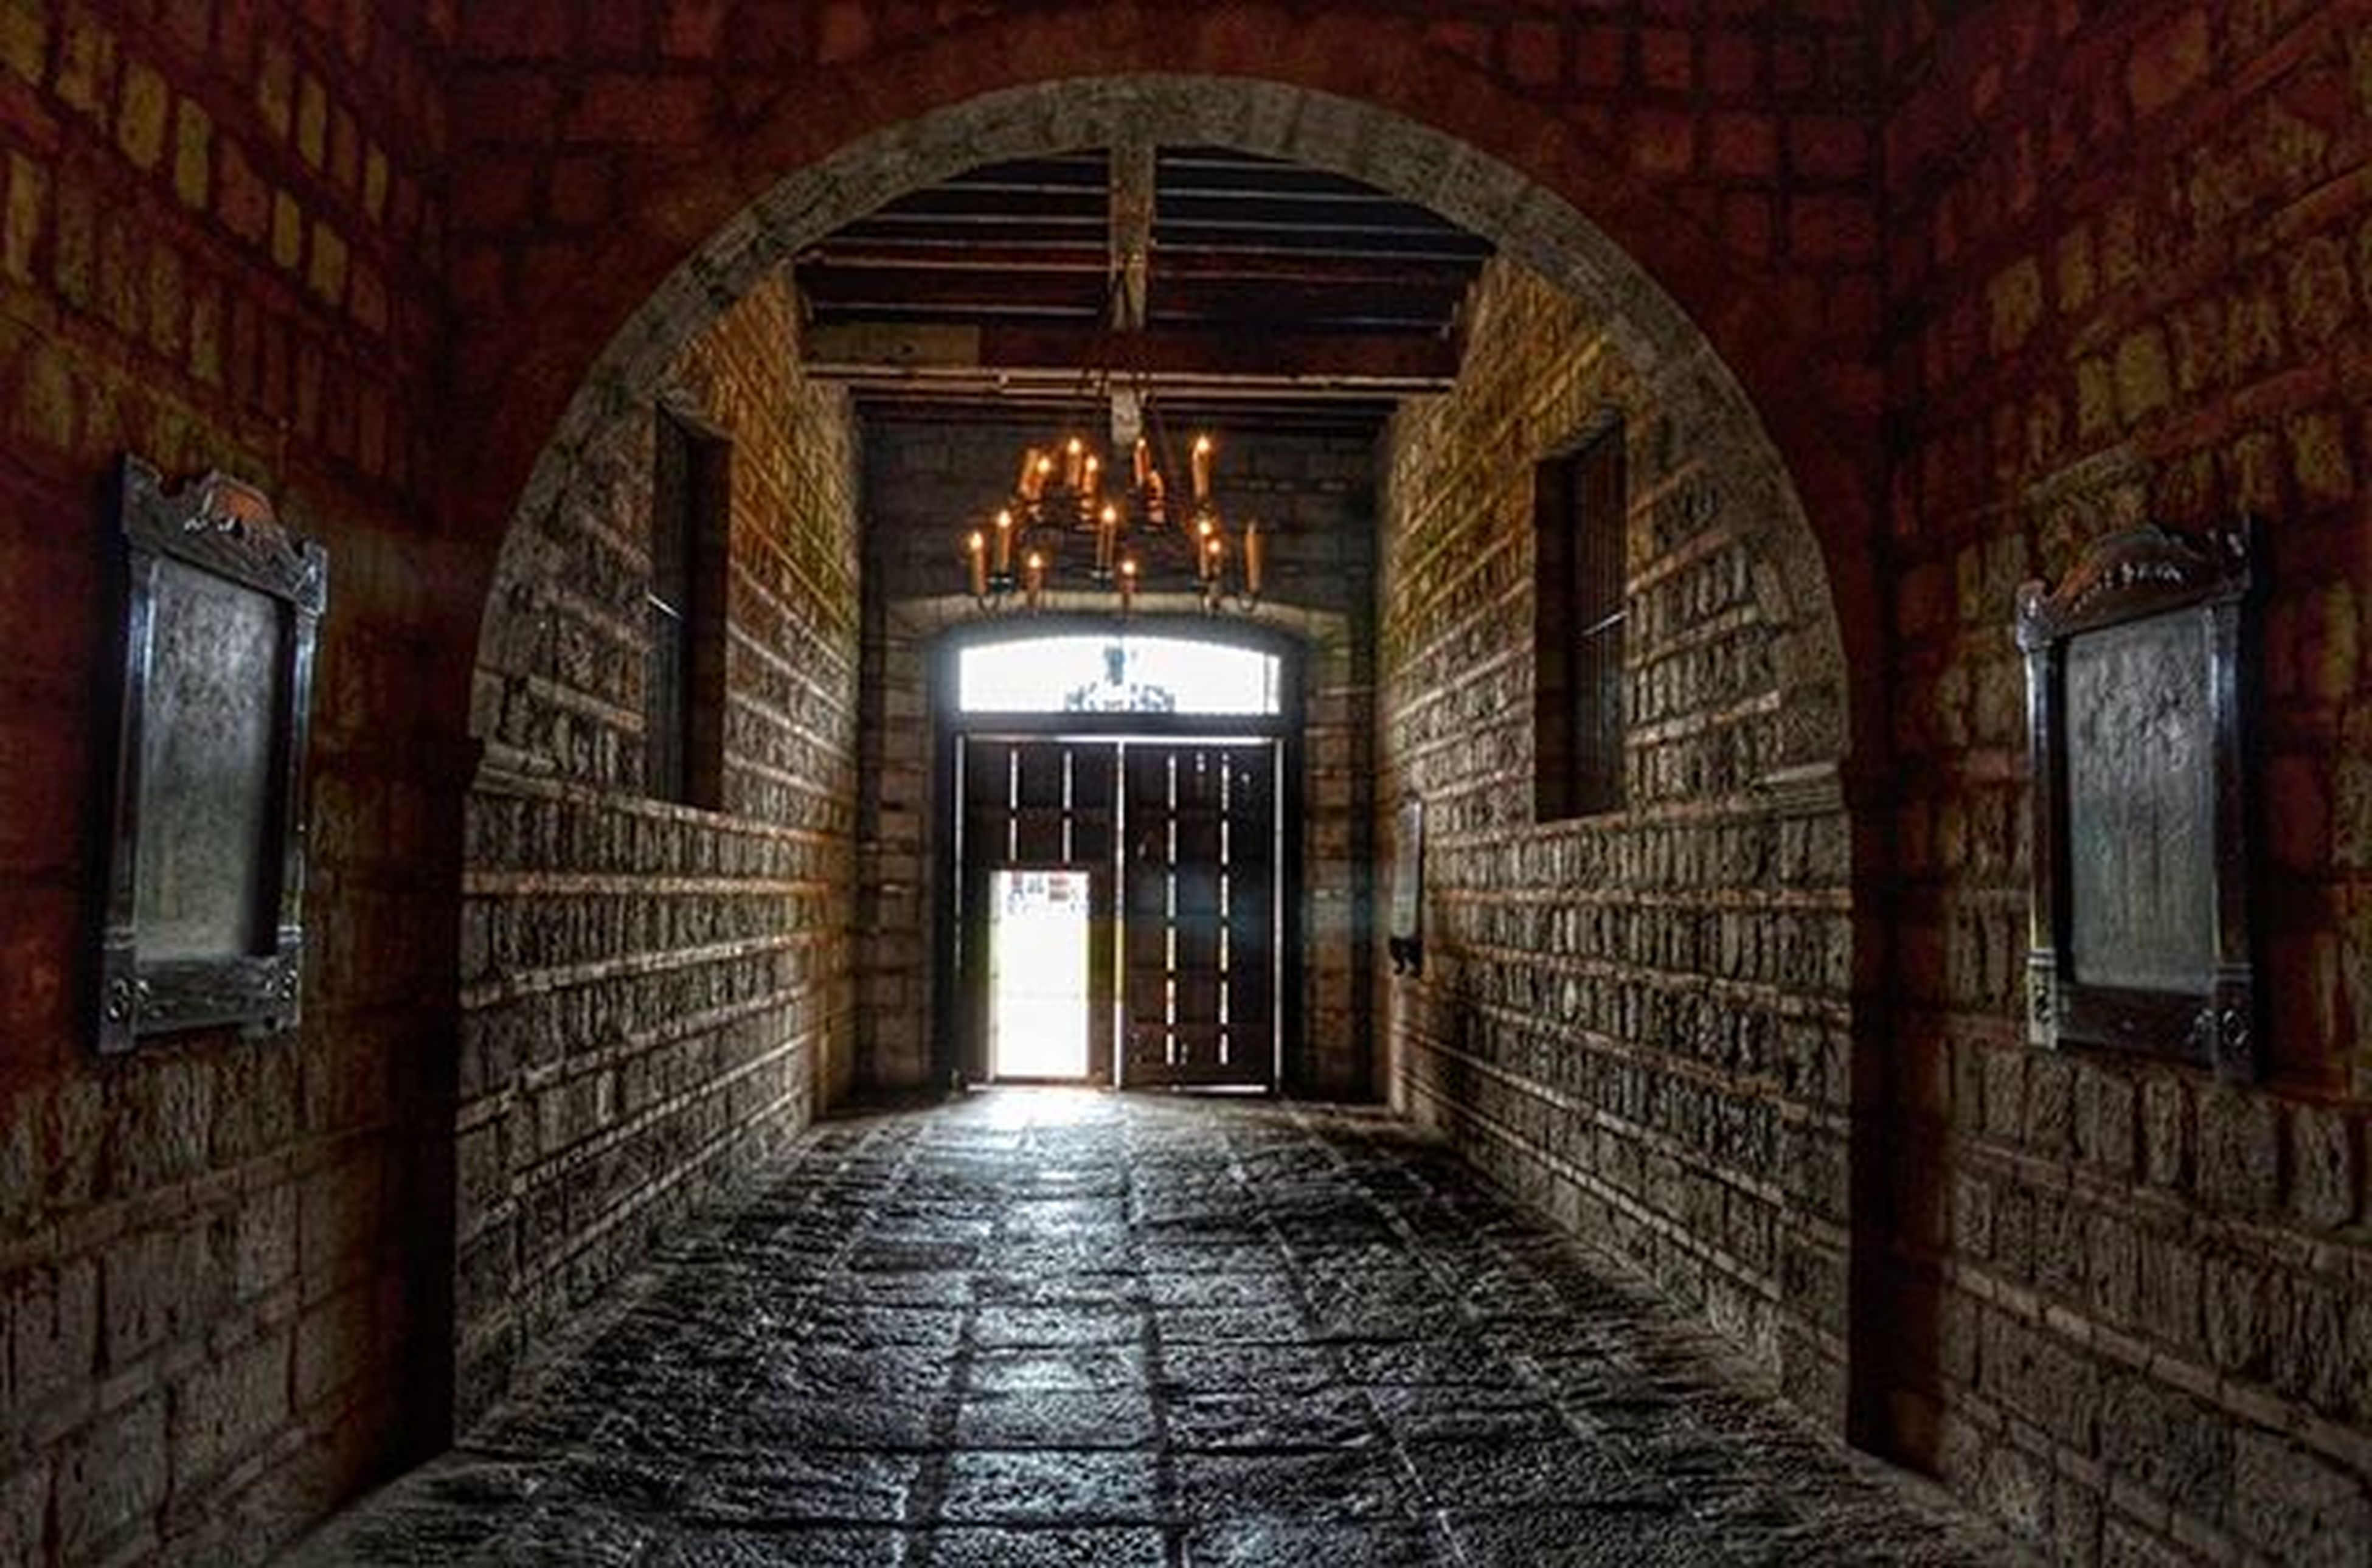 architecture, arch, built structure, the way forward, indoors, archway, corridor, building exterior, entrance, door, diminishing perspective, narrow, empty, building, cobblestone, old, illuminated, brick wall, history, no people